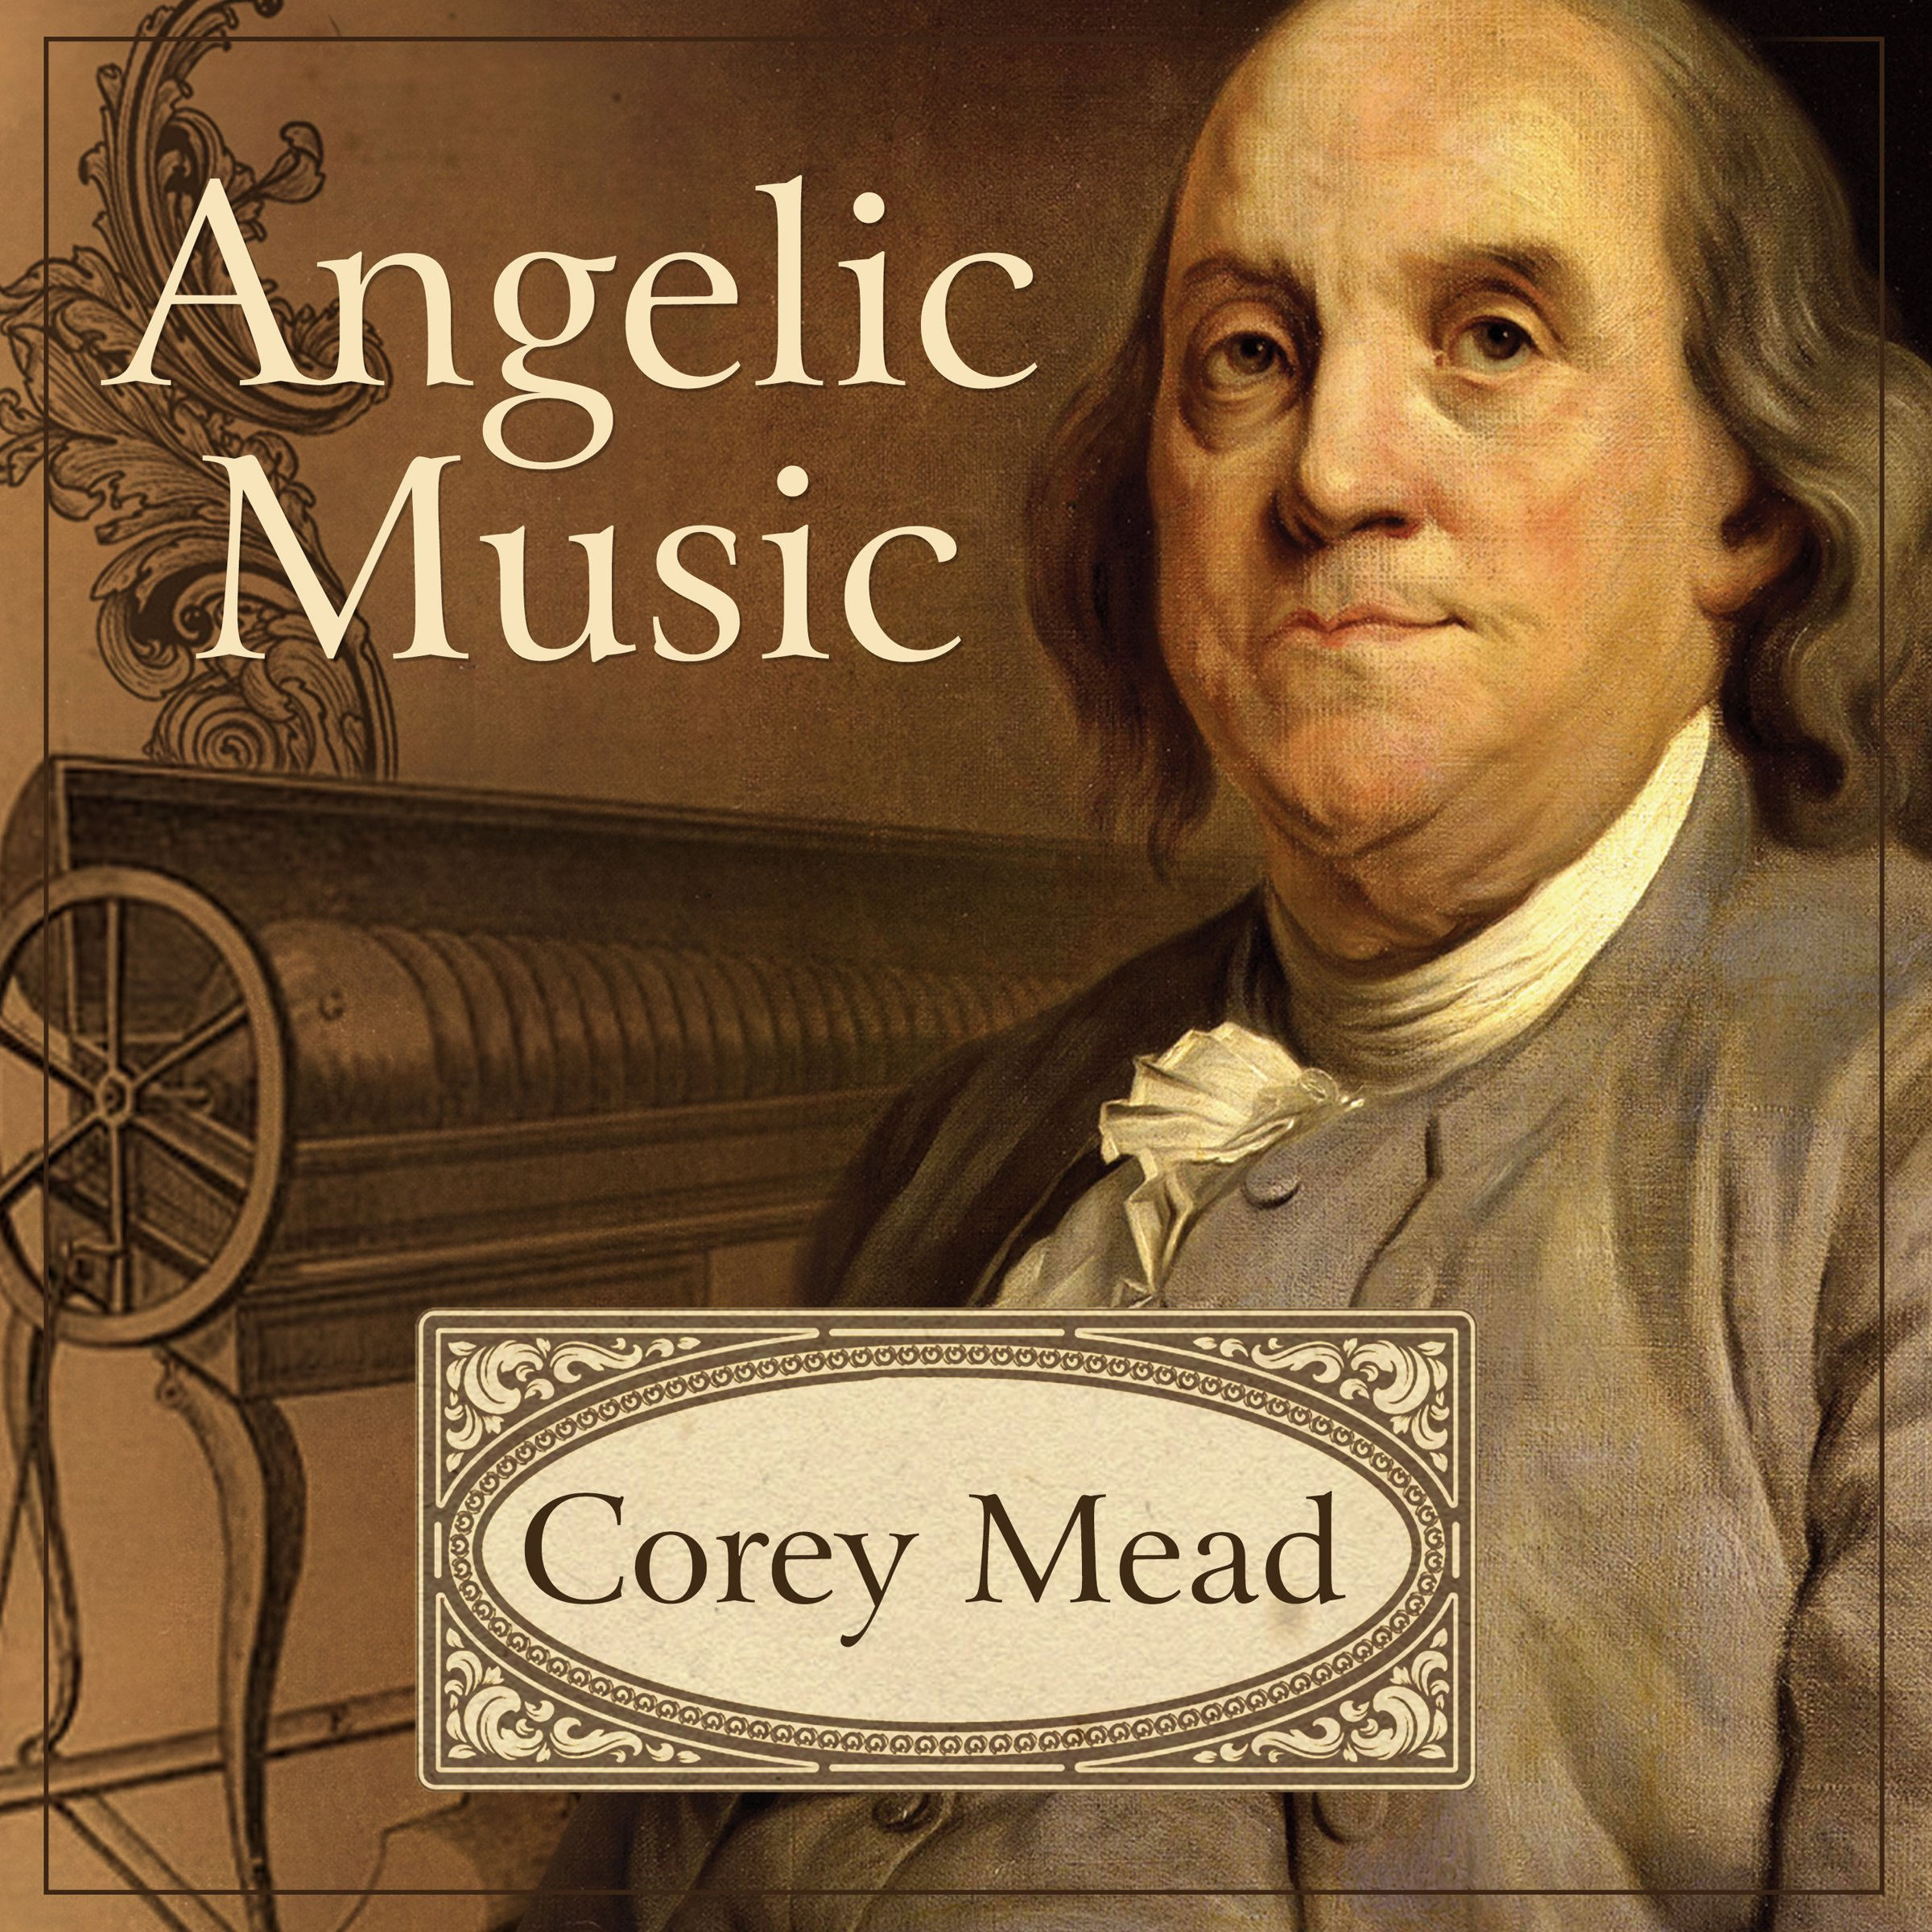 Angelic Music: The Story of Benjamin Franklin's Glass Armonica